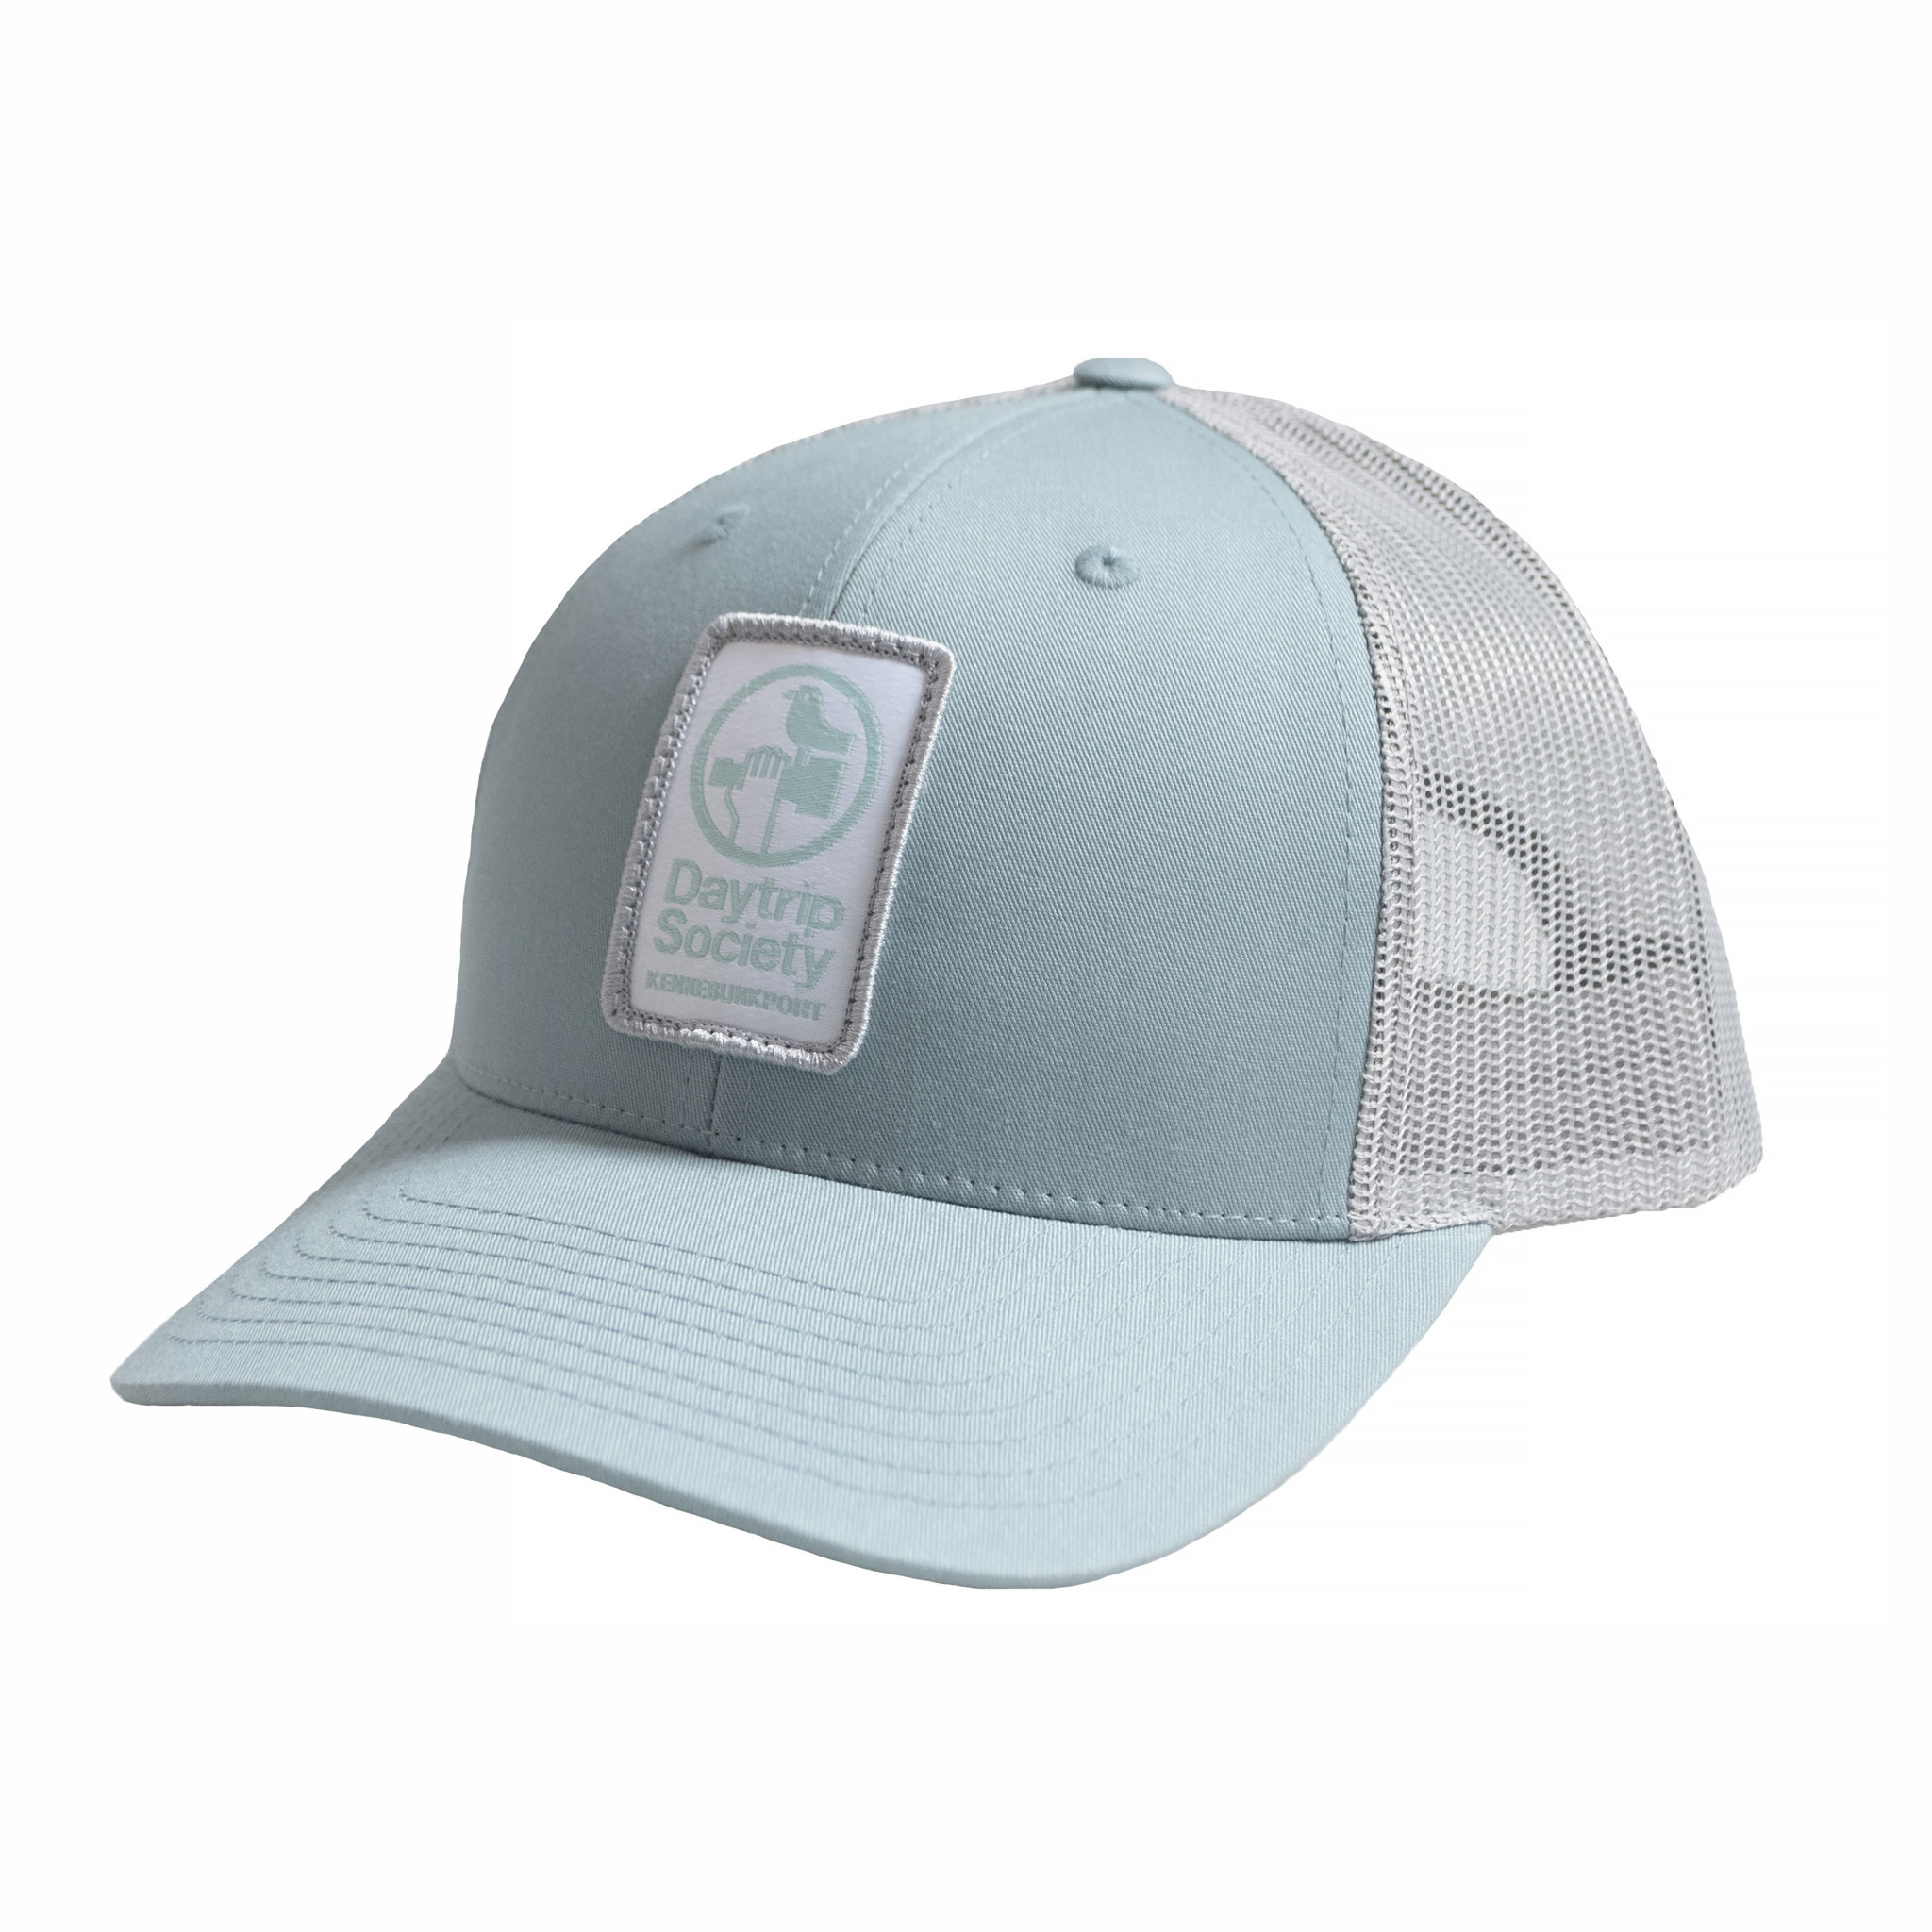 Daytrip Society LoPro Trucker Hat - Smoke Blue - M/L